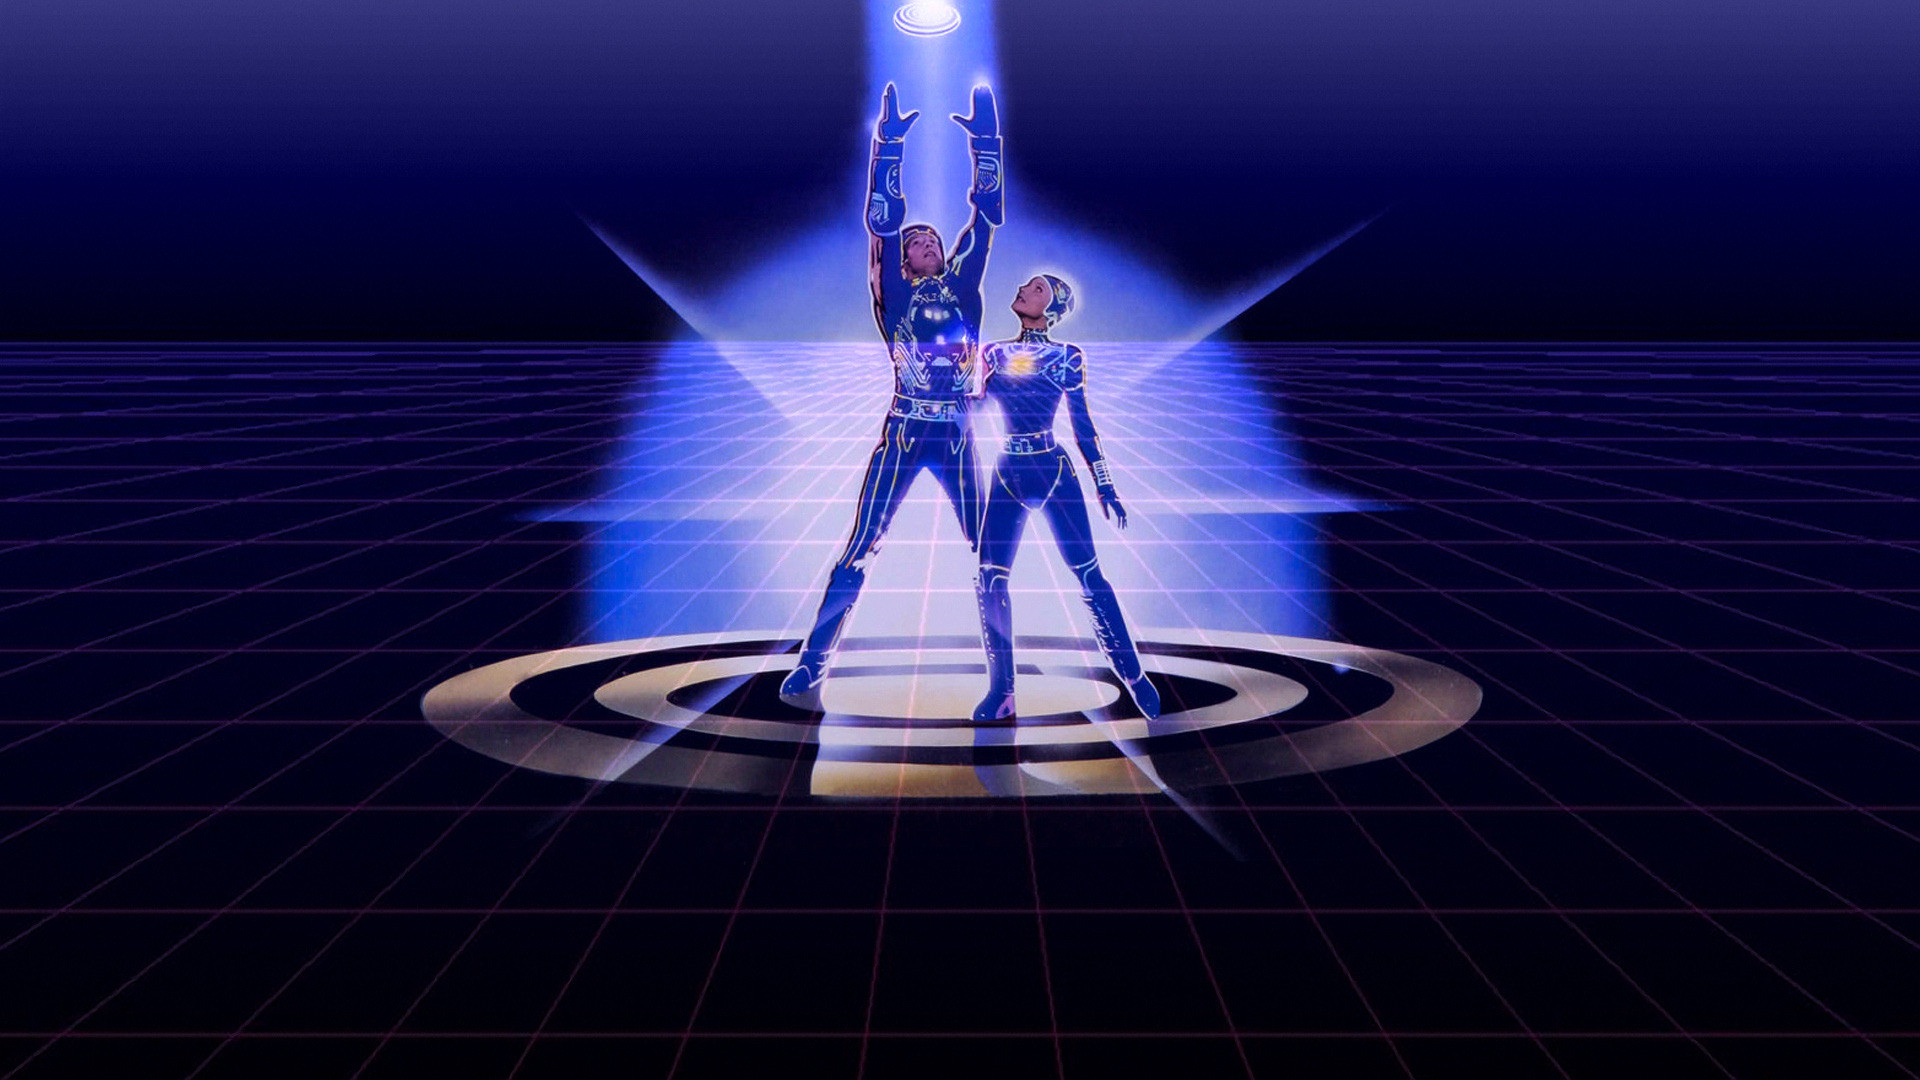 Putting Tron's Special Effects Together - Tested